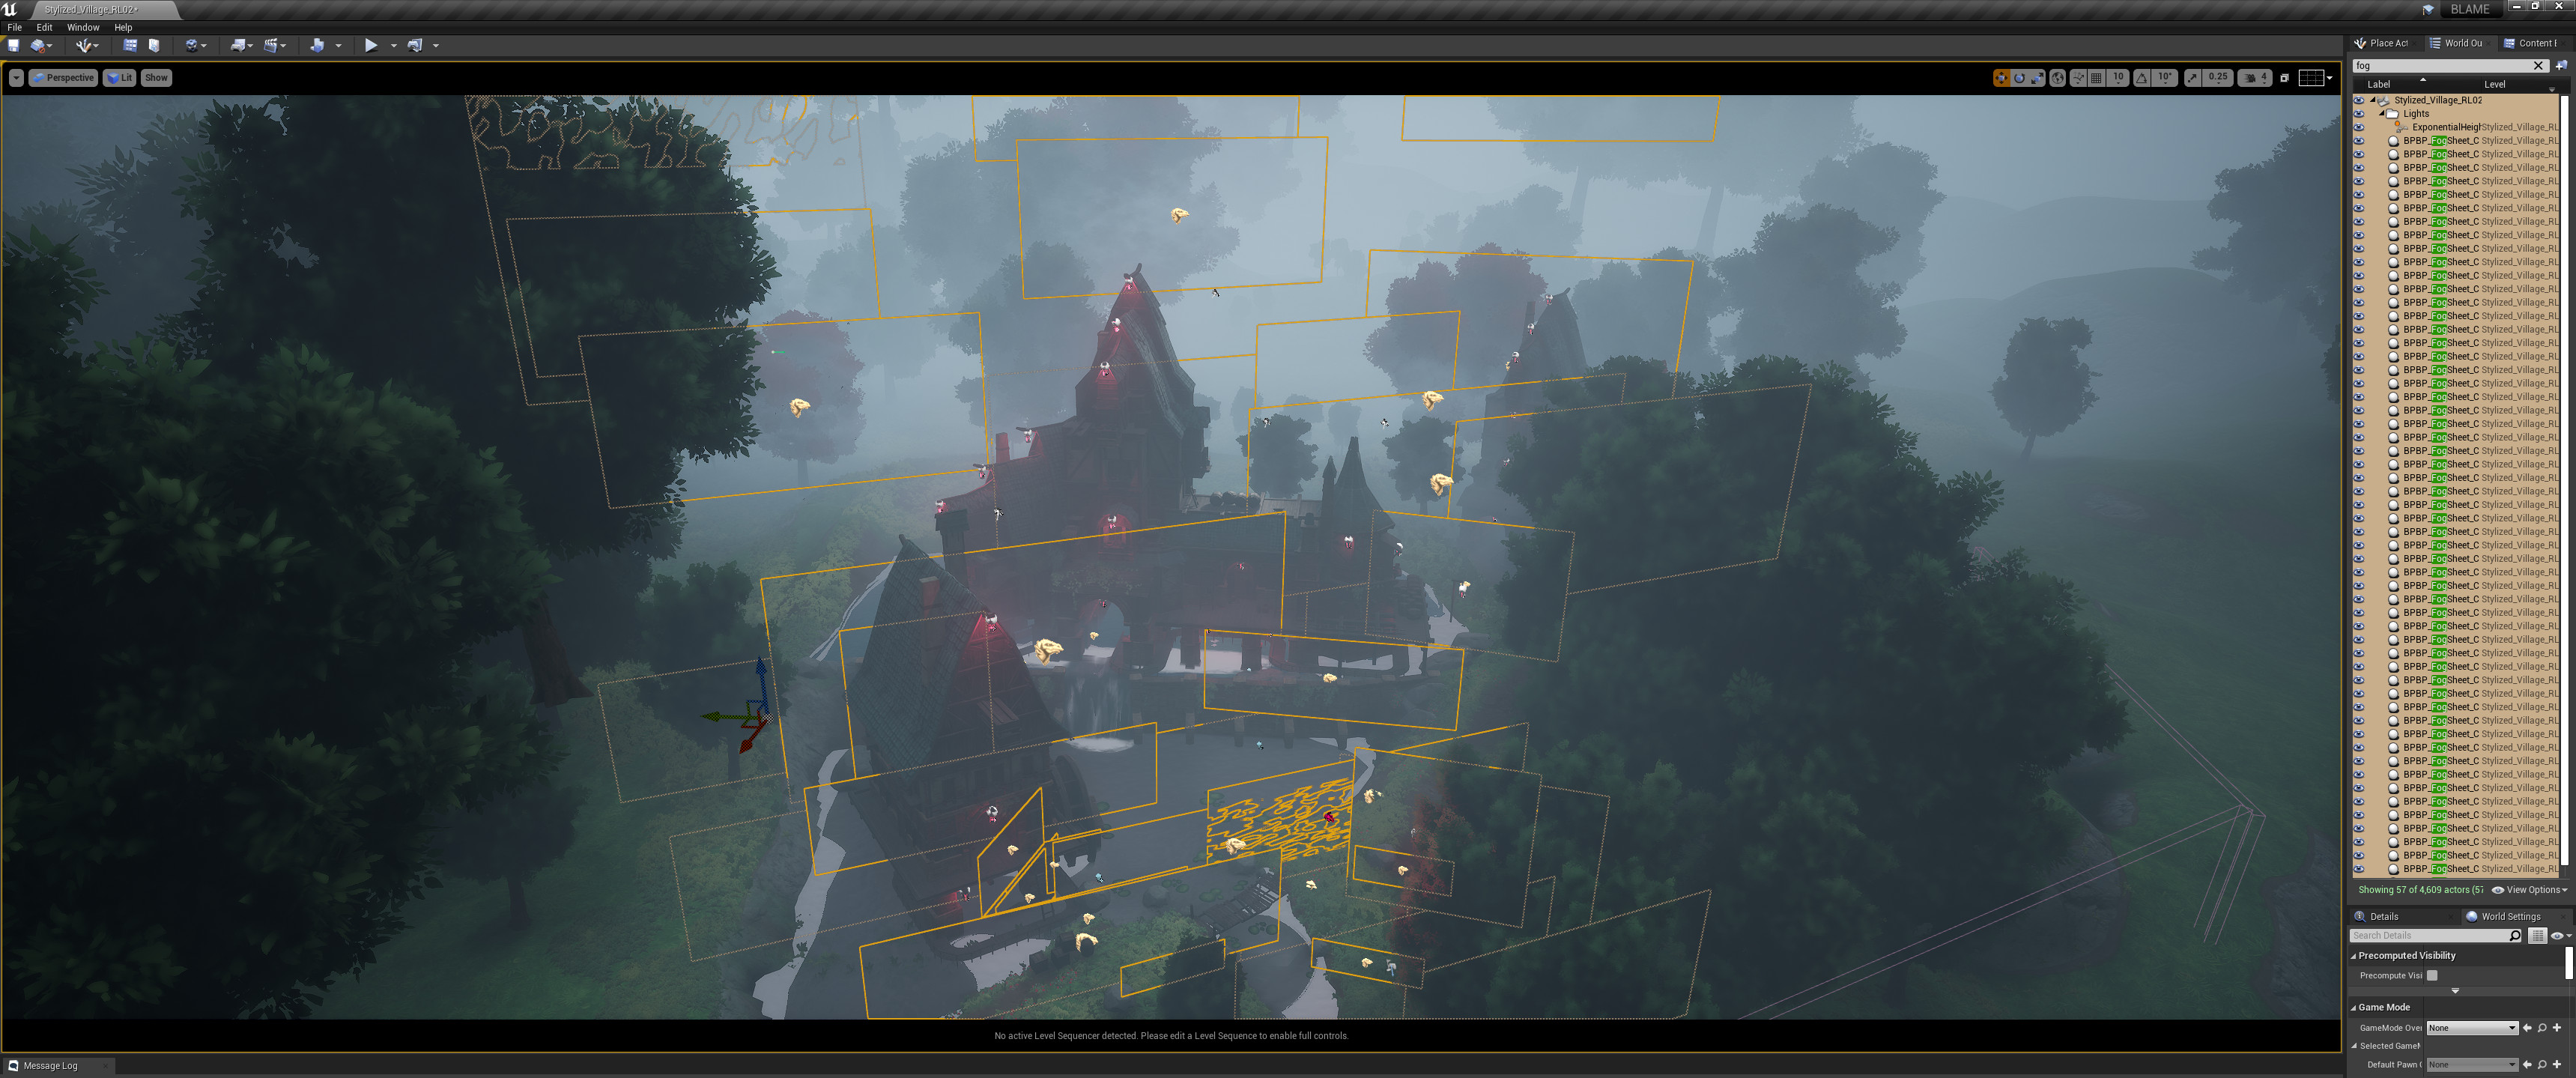 """For this one, I put the emphasis on the fog and depth rather than lighting. So I used a lot of fog cards to layer the depth. The one I'm using is from the """"Blueprint"""" free demo map on the UE4 launcher. Very vanilla but effective."""